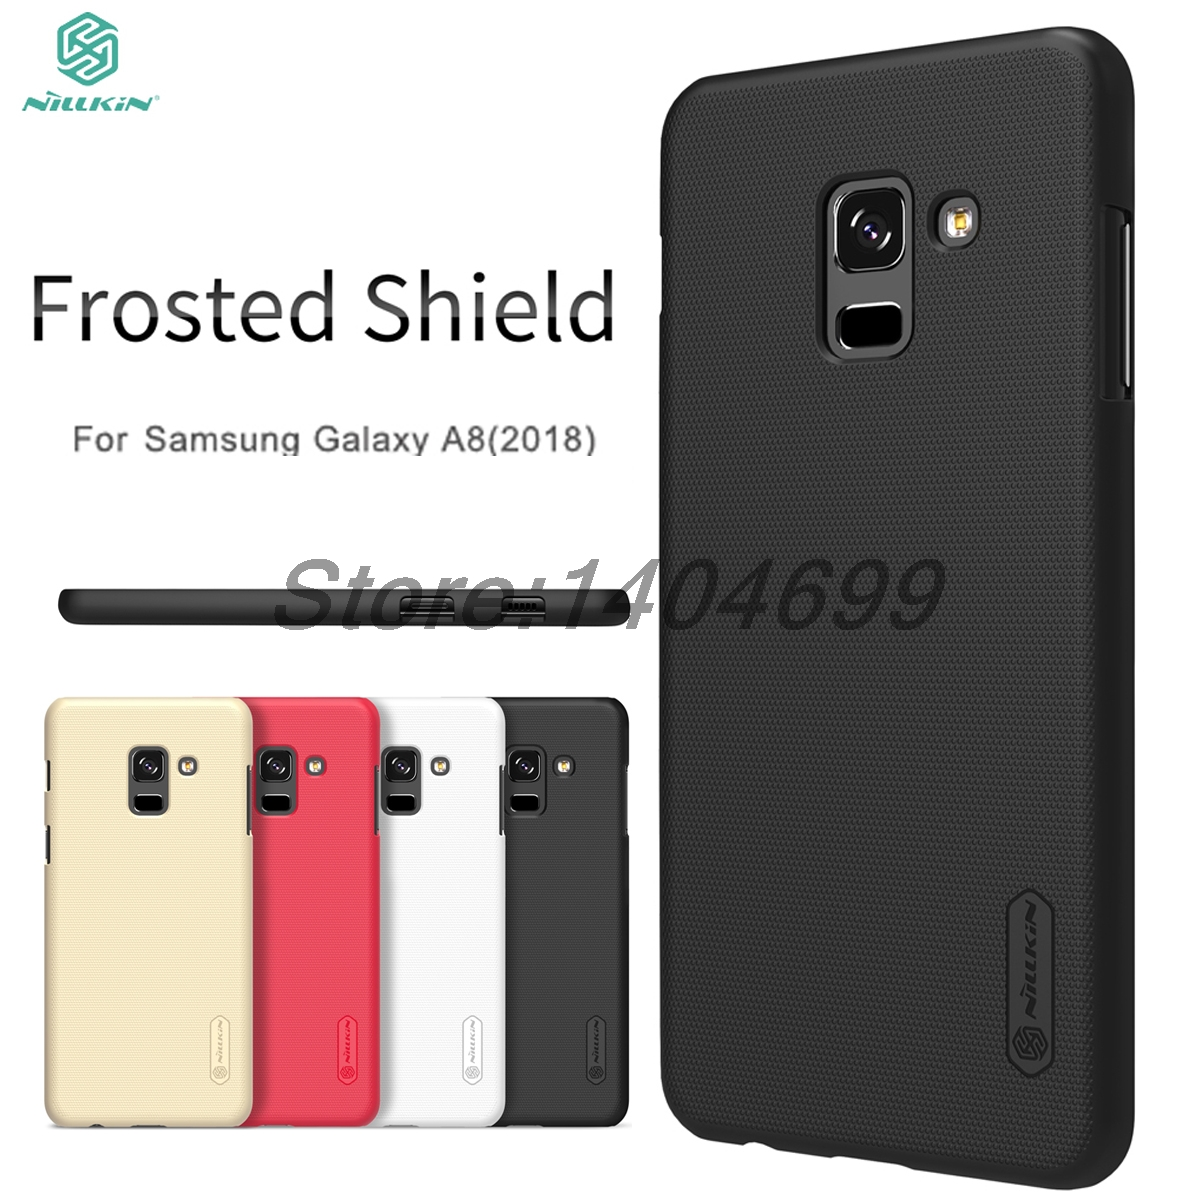 sFor <font><b>Samsung</b></font> Galaxy A8 2018 Case A8 2018 Matte Case Nillkin Frosted Shield Back <font><b>Cover</b></font> Case For <font><b>Samsung</b></font> A8 2018 <font><b>A530F</b></font> image